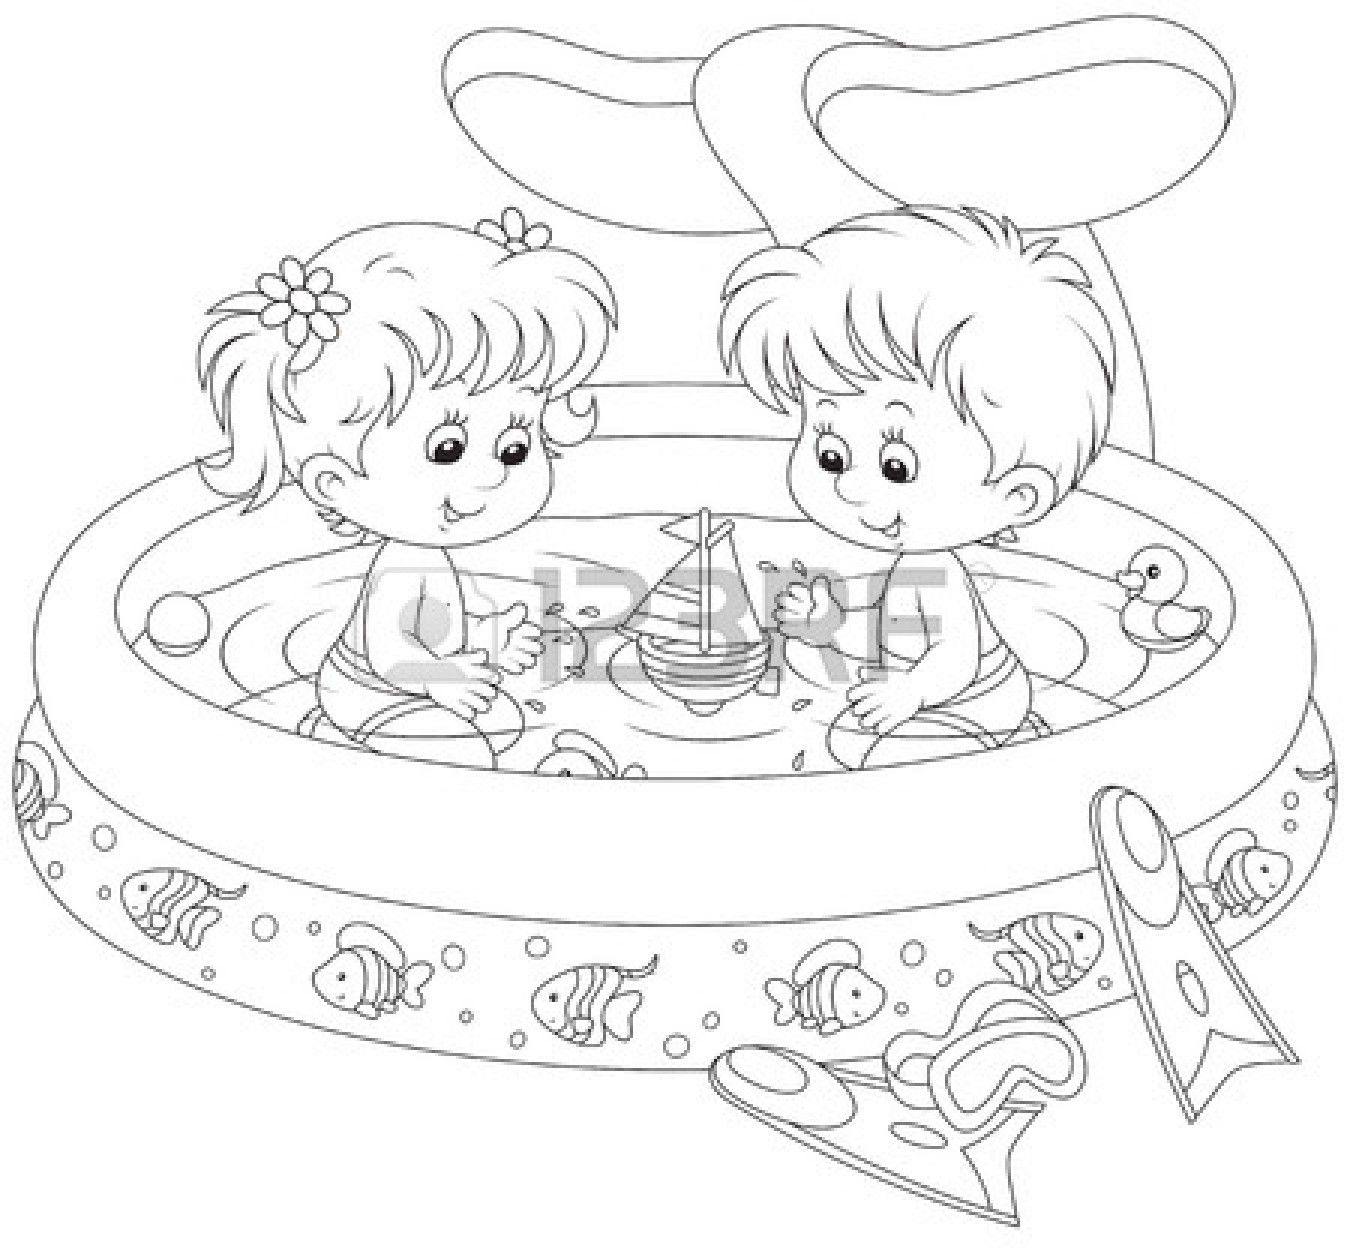 Children In A Kids Pool Cool Coloring Pages Coloring Books Coloring Pages